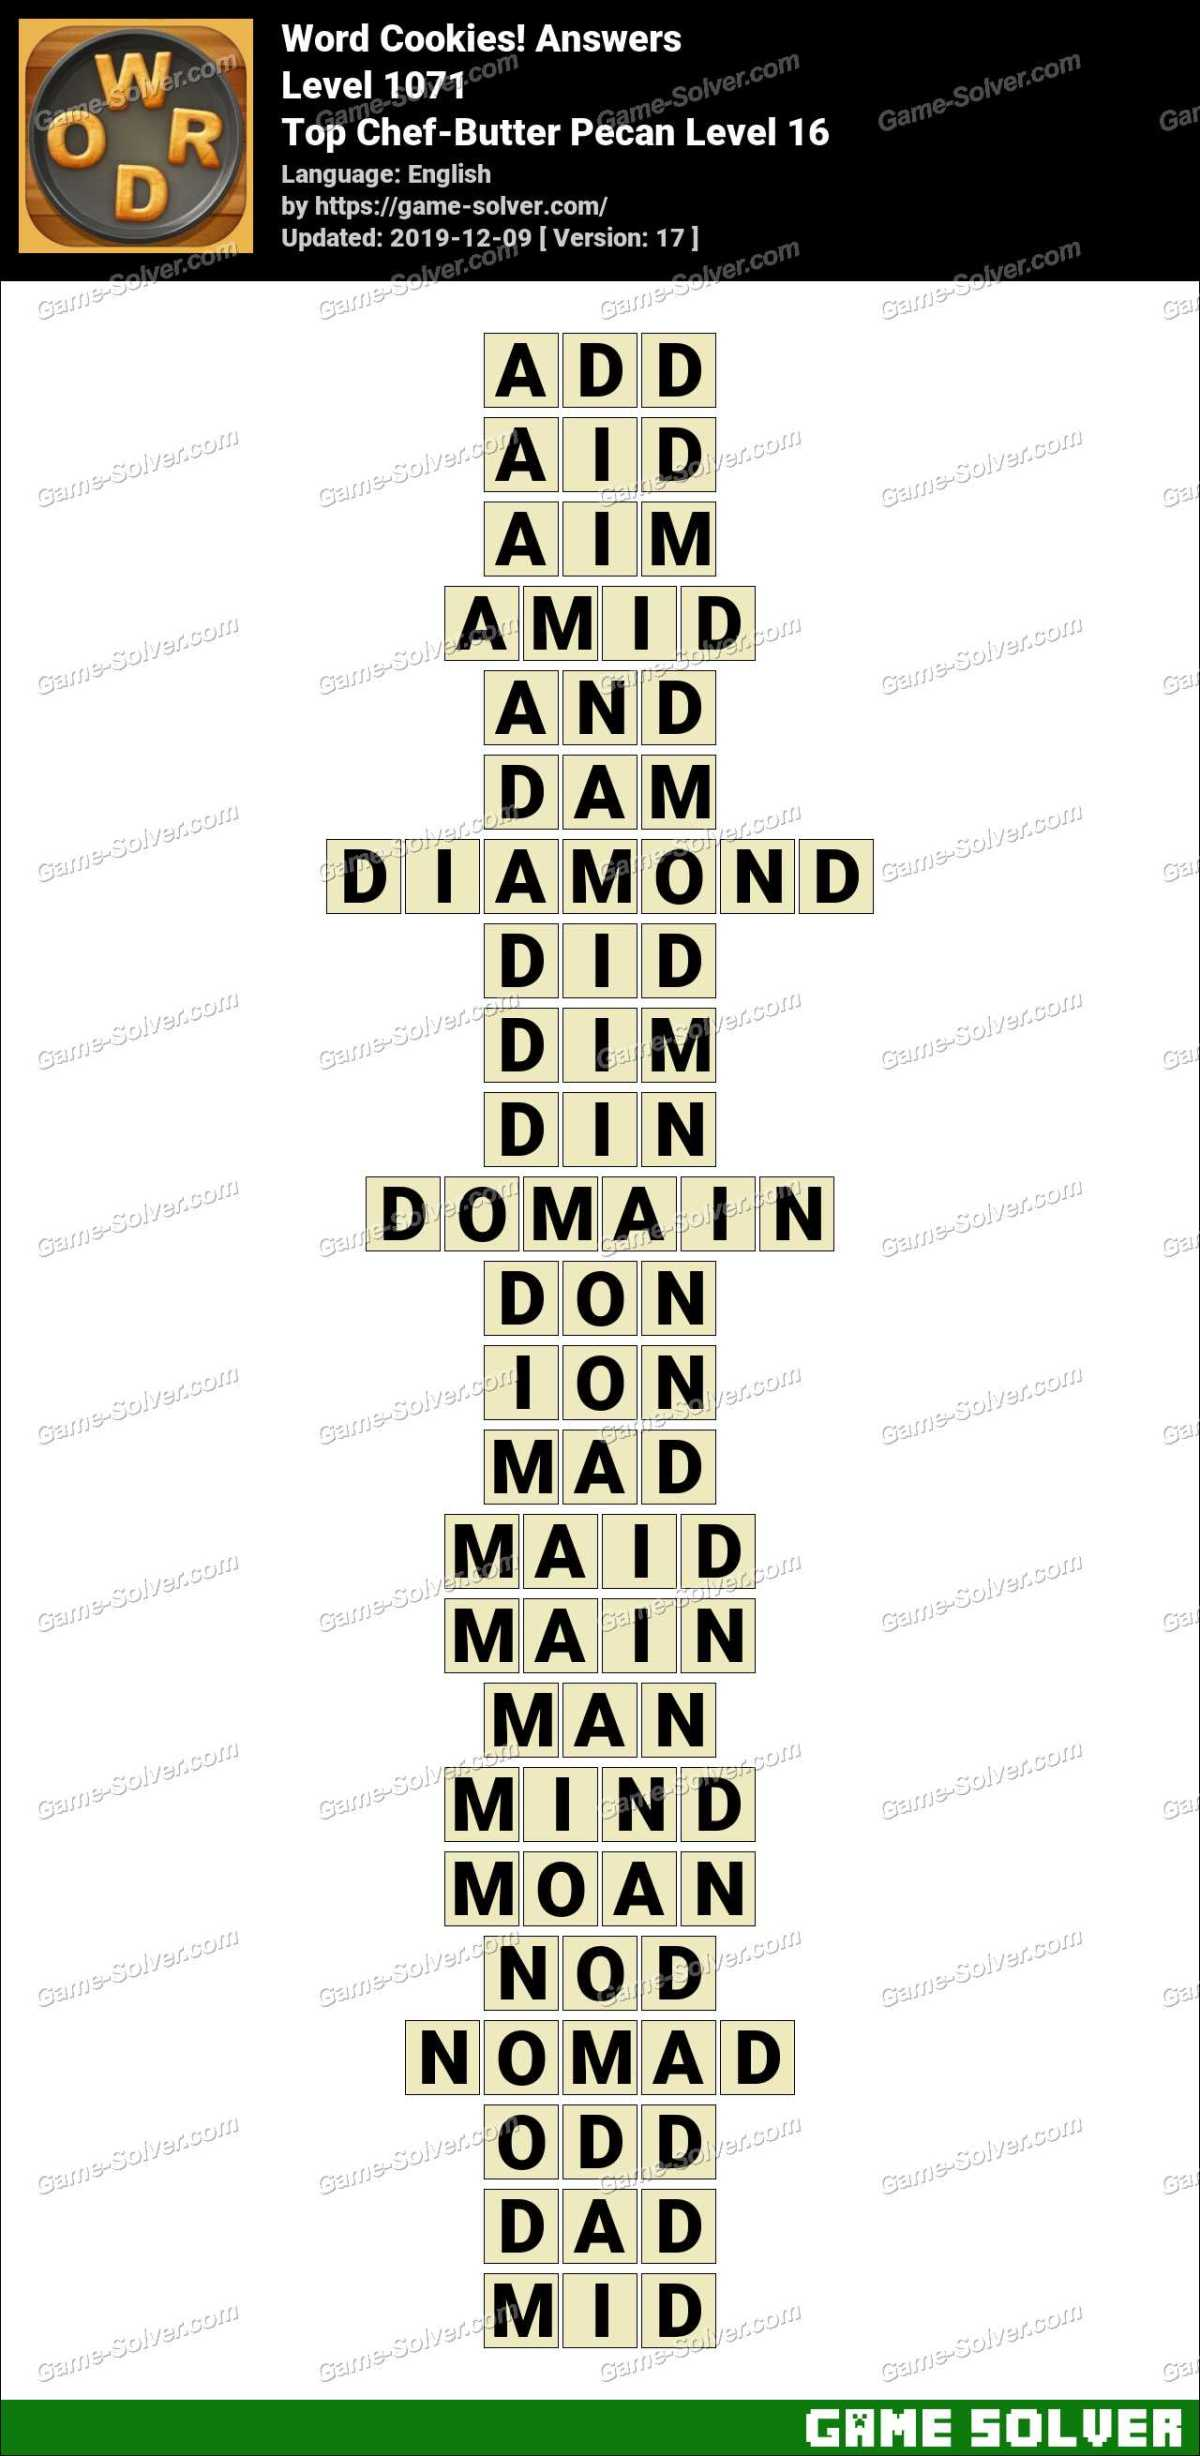 Word Cookies Top Chef-Butter Pecan Level 16 Answers